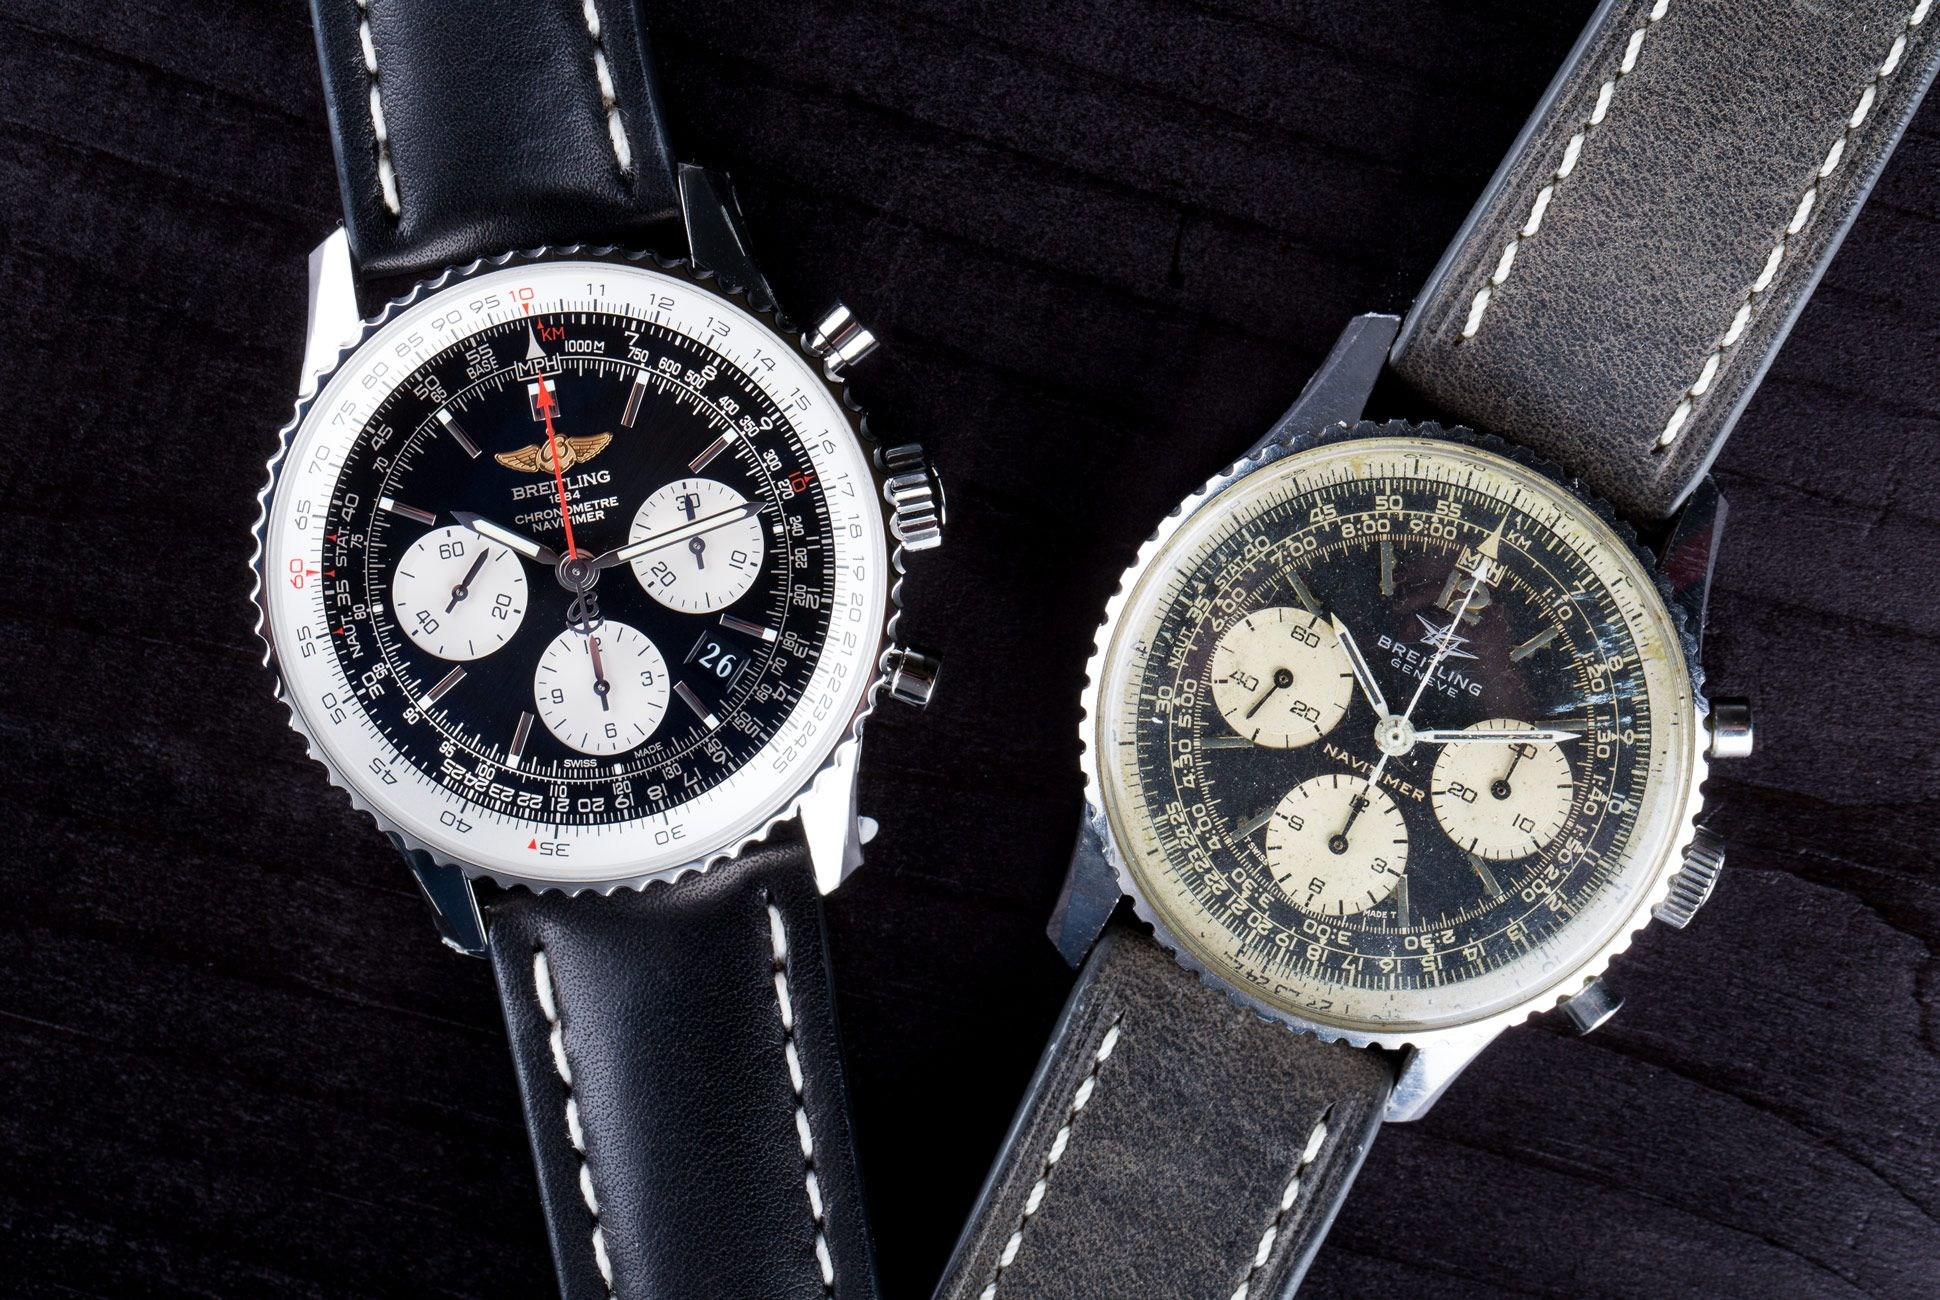 iconic rod watches chronograph